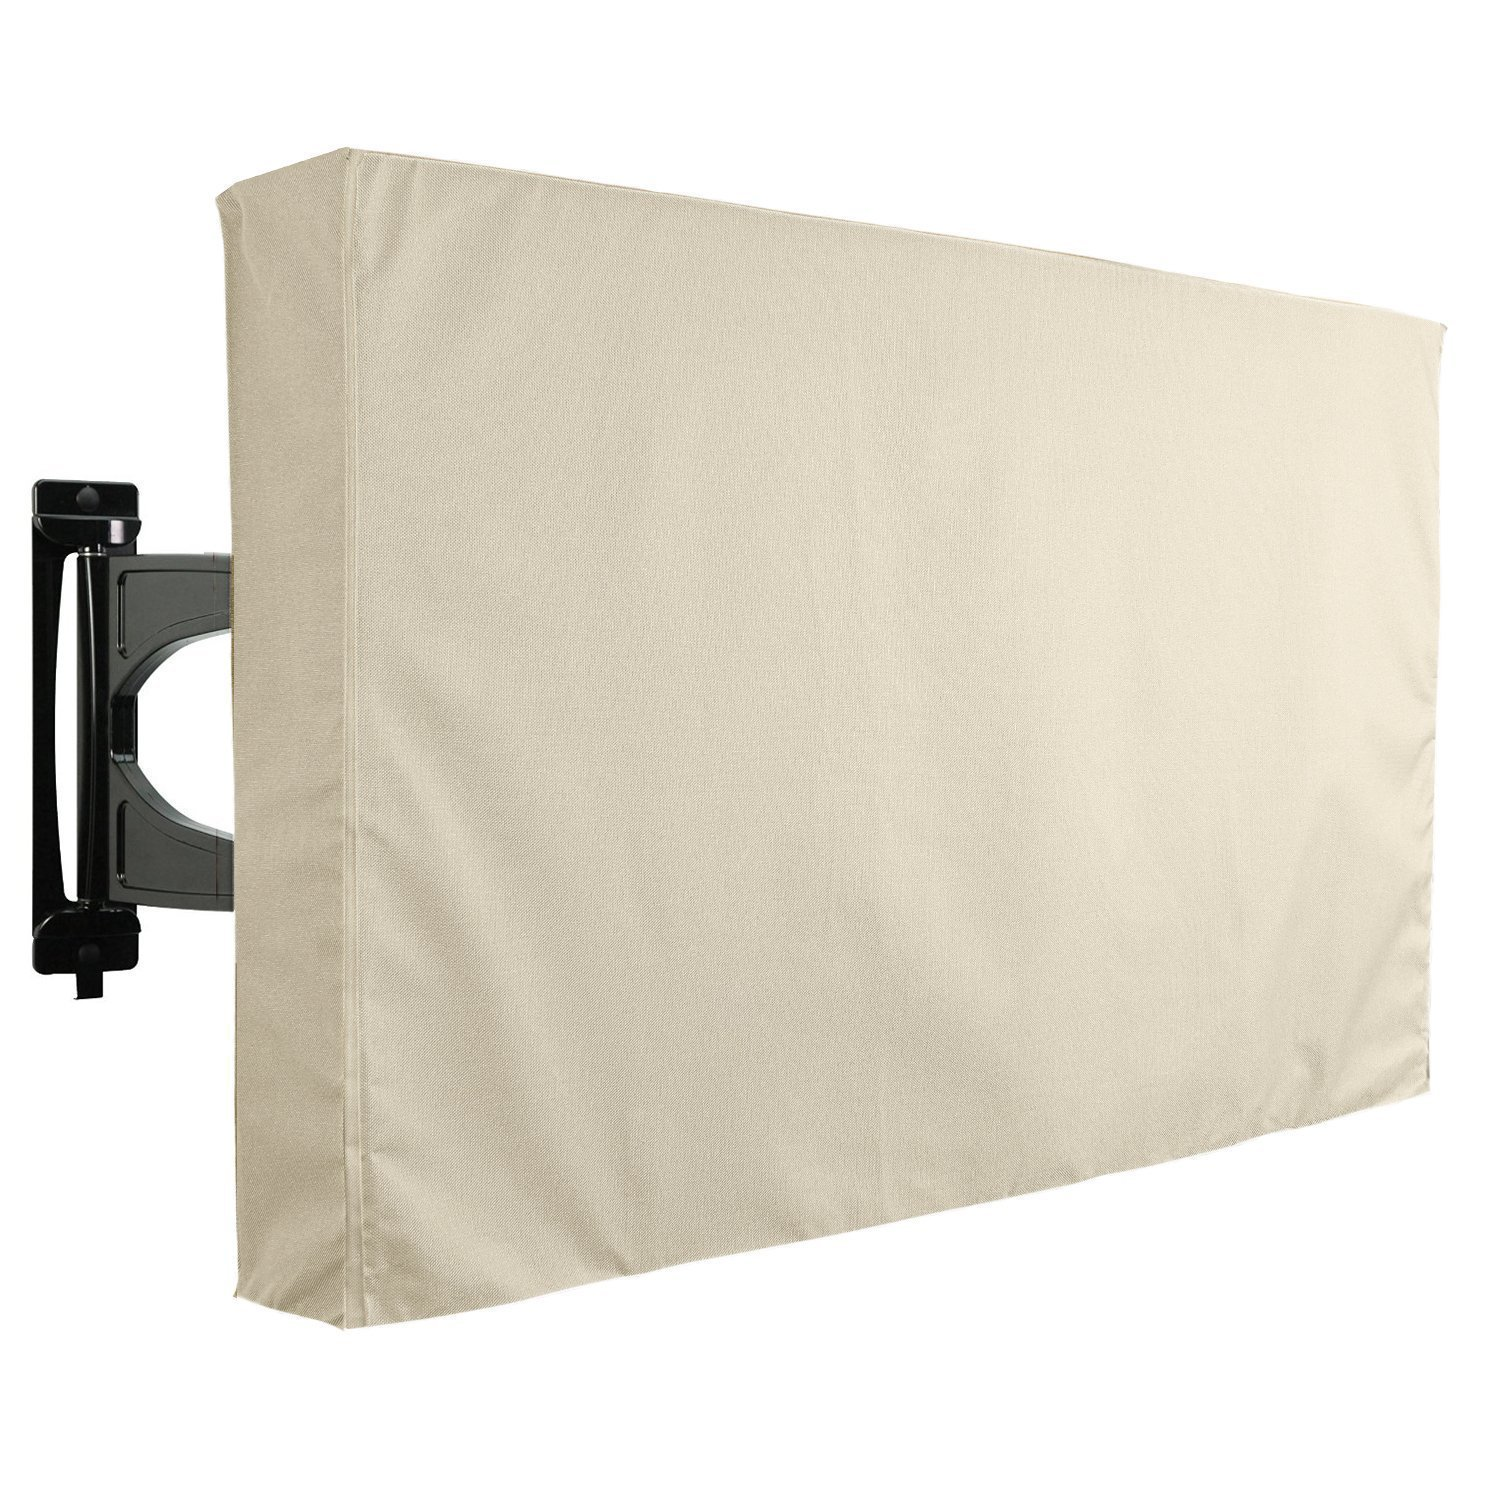 KHOMO GEAR Outdoor TV Cover - SAHARA Series - Universal Weatherproof  Protector For 50 - 52 Inch TV - Fits Most Mounts & Brackets